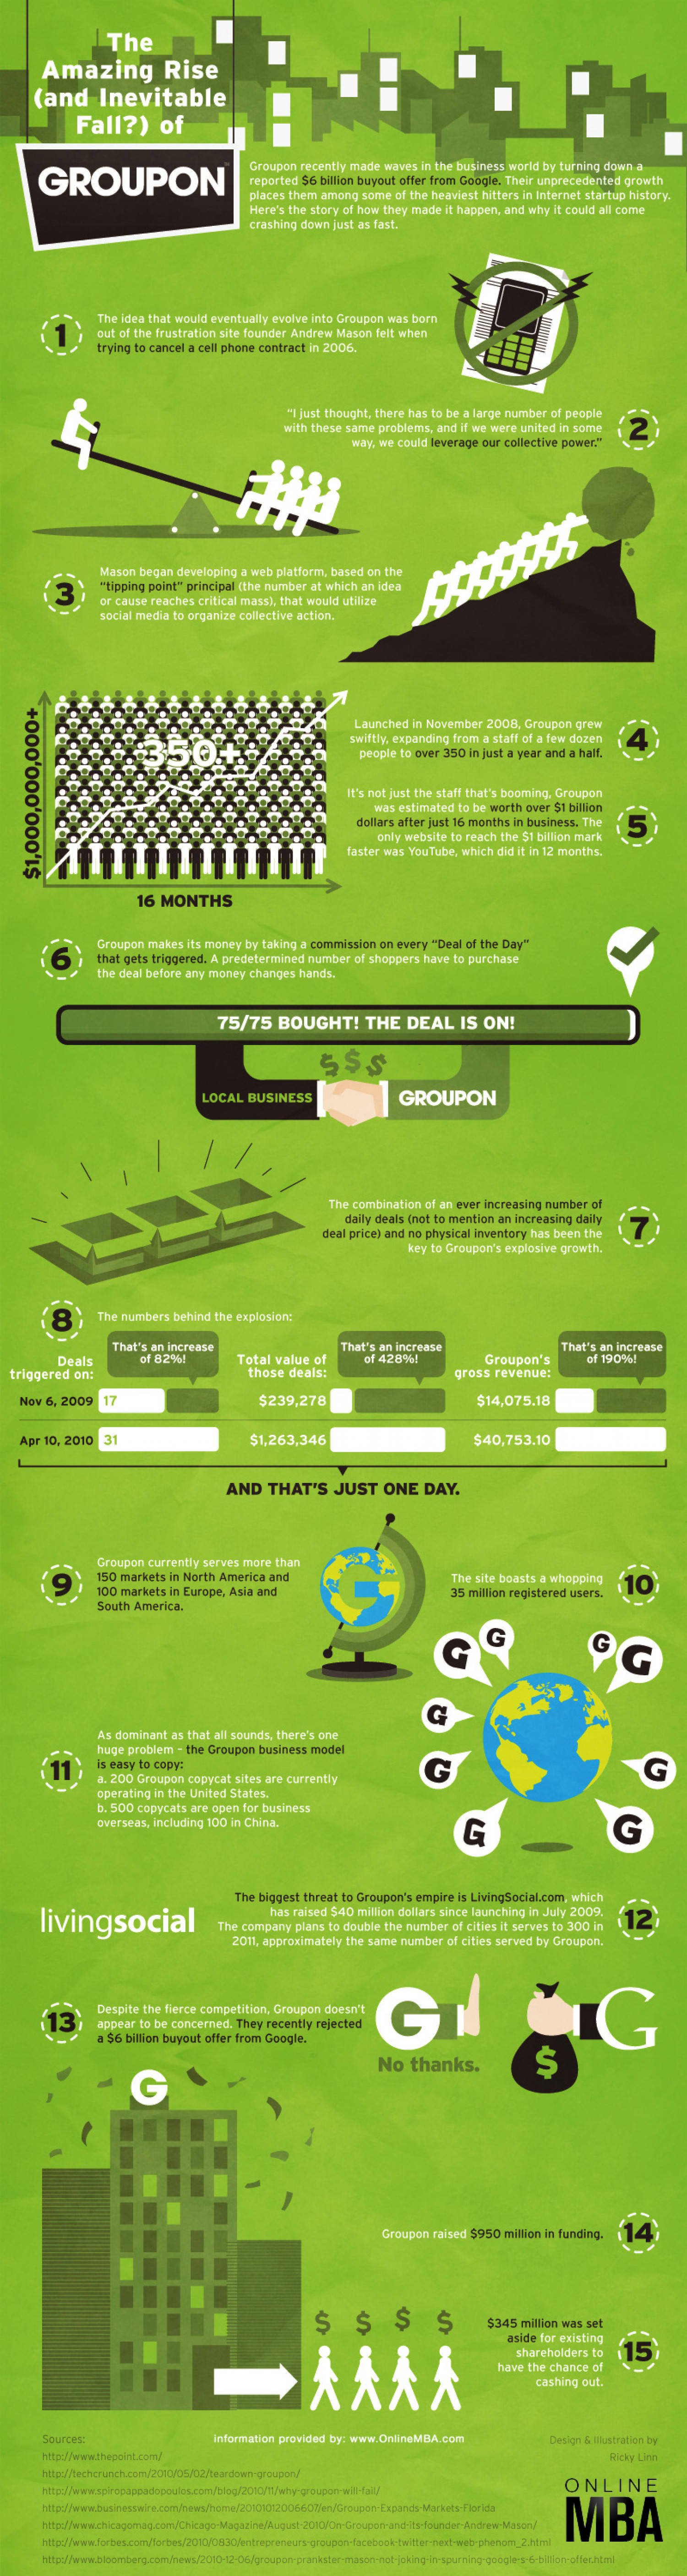 The Amazing Rise of Groupon Infographic